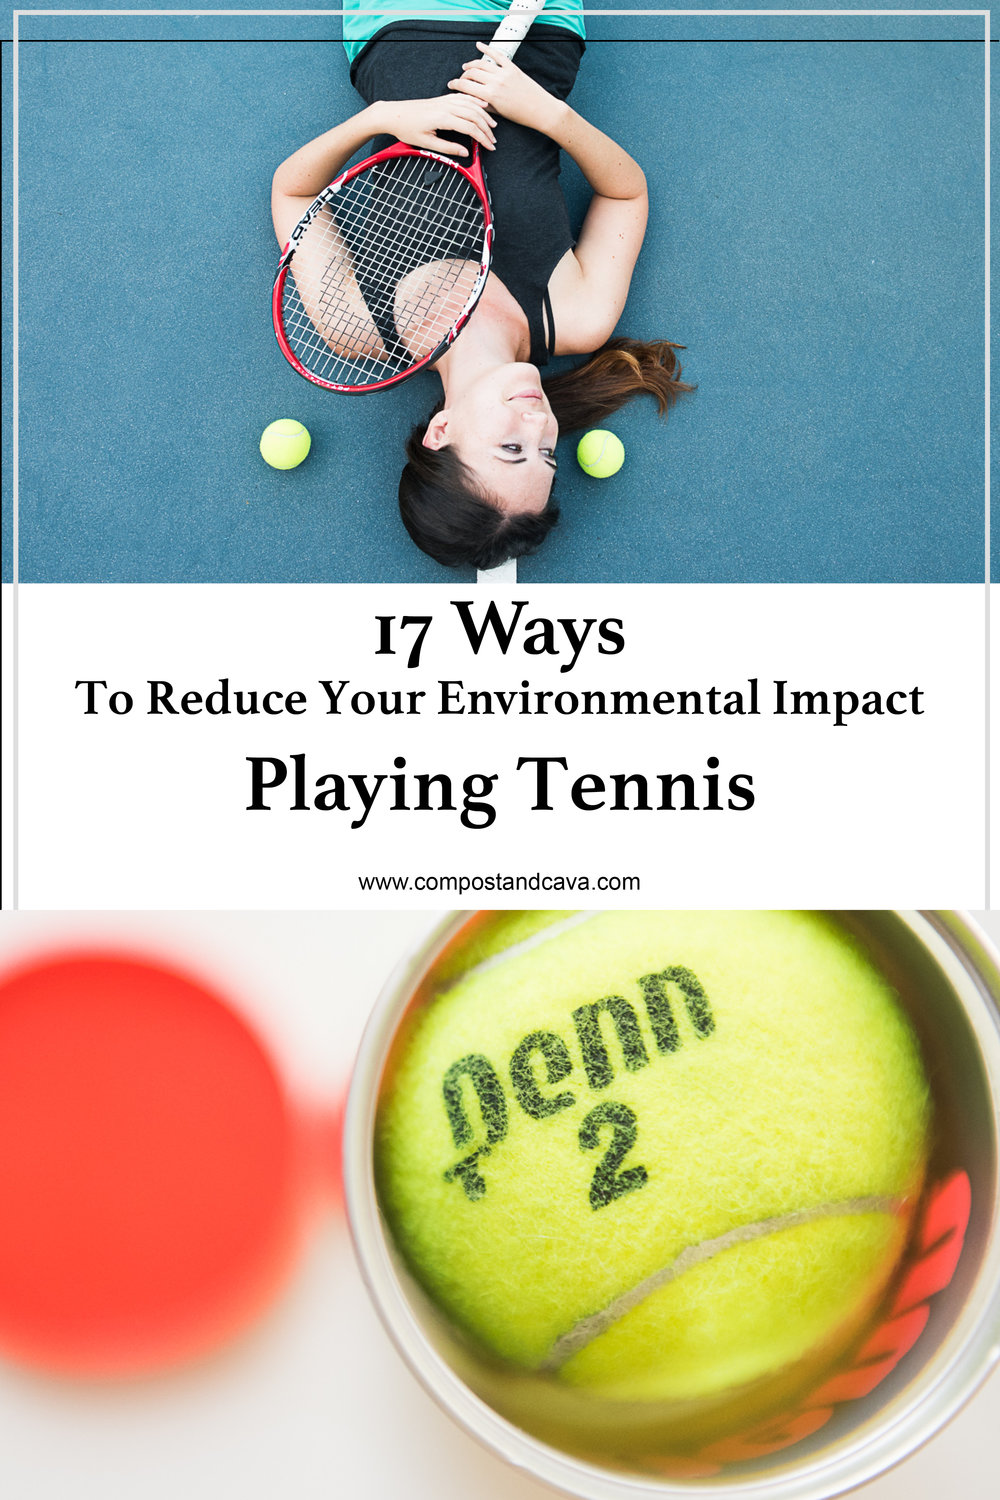 17 Ways to Reduce Your Environmental Impact Playing Tennis.jpg